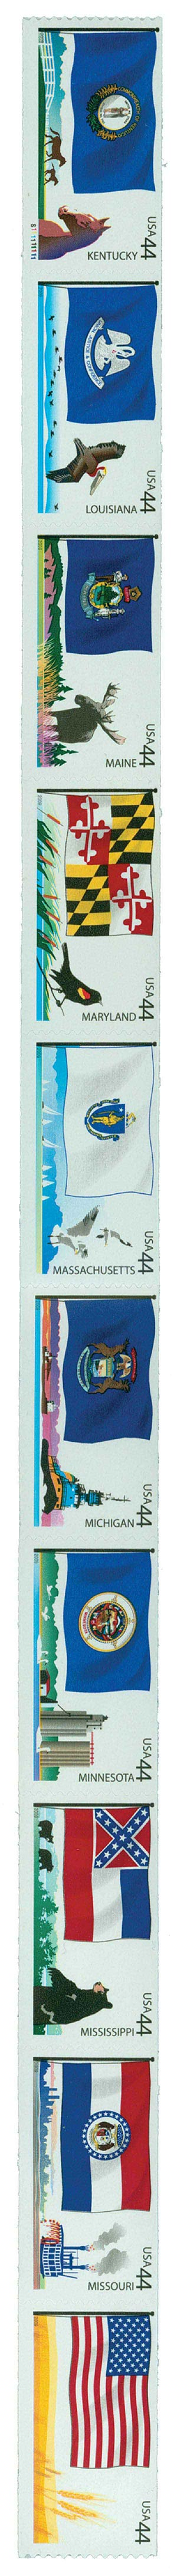 2009 44c Flags of Our Nation: 3rd Edition, strip of 10 stamps